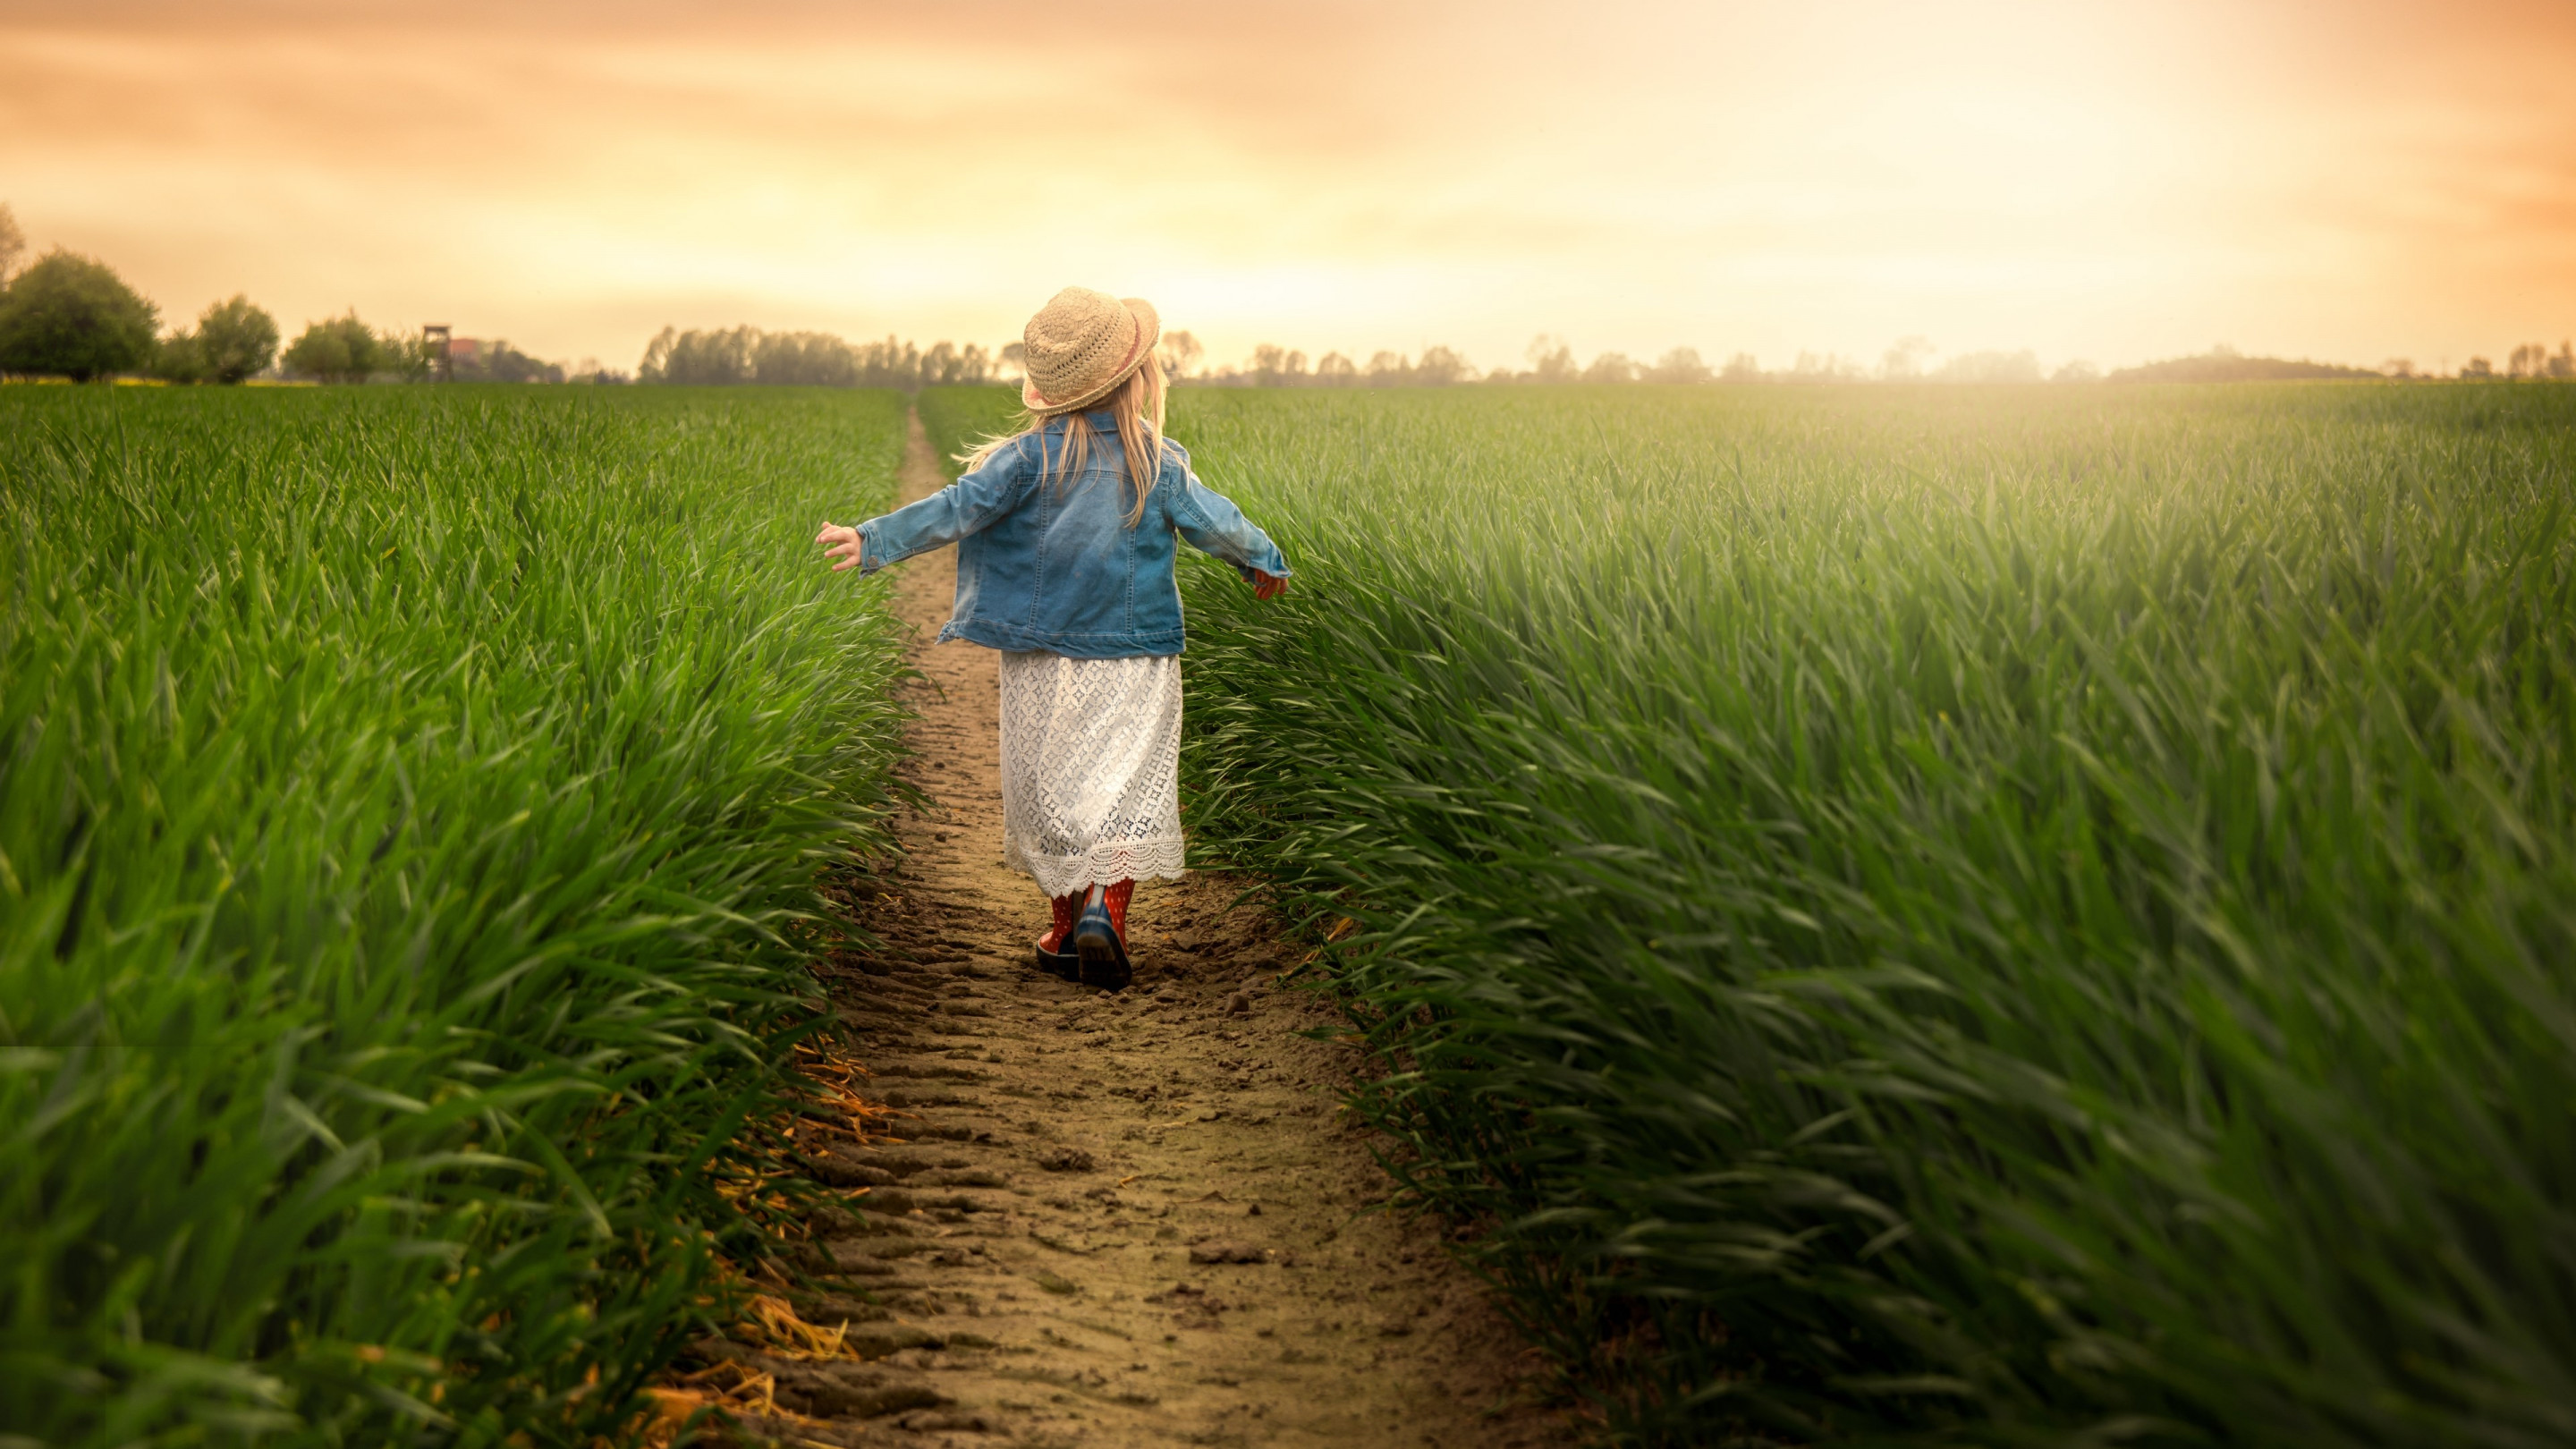 Child in the green field at sunset wallpaper 2880x1620